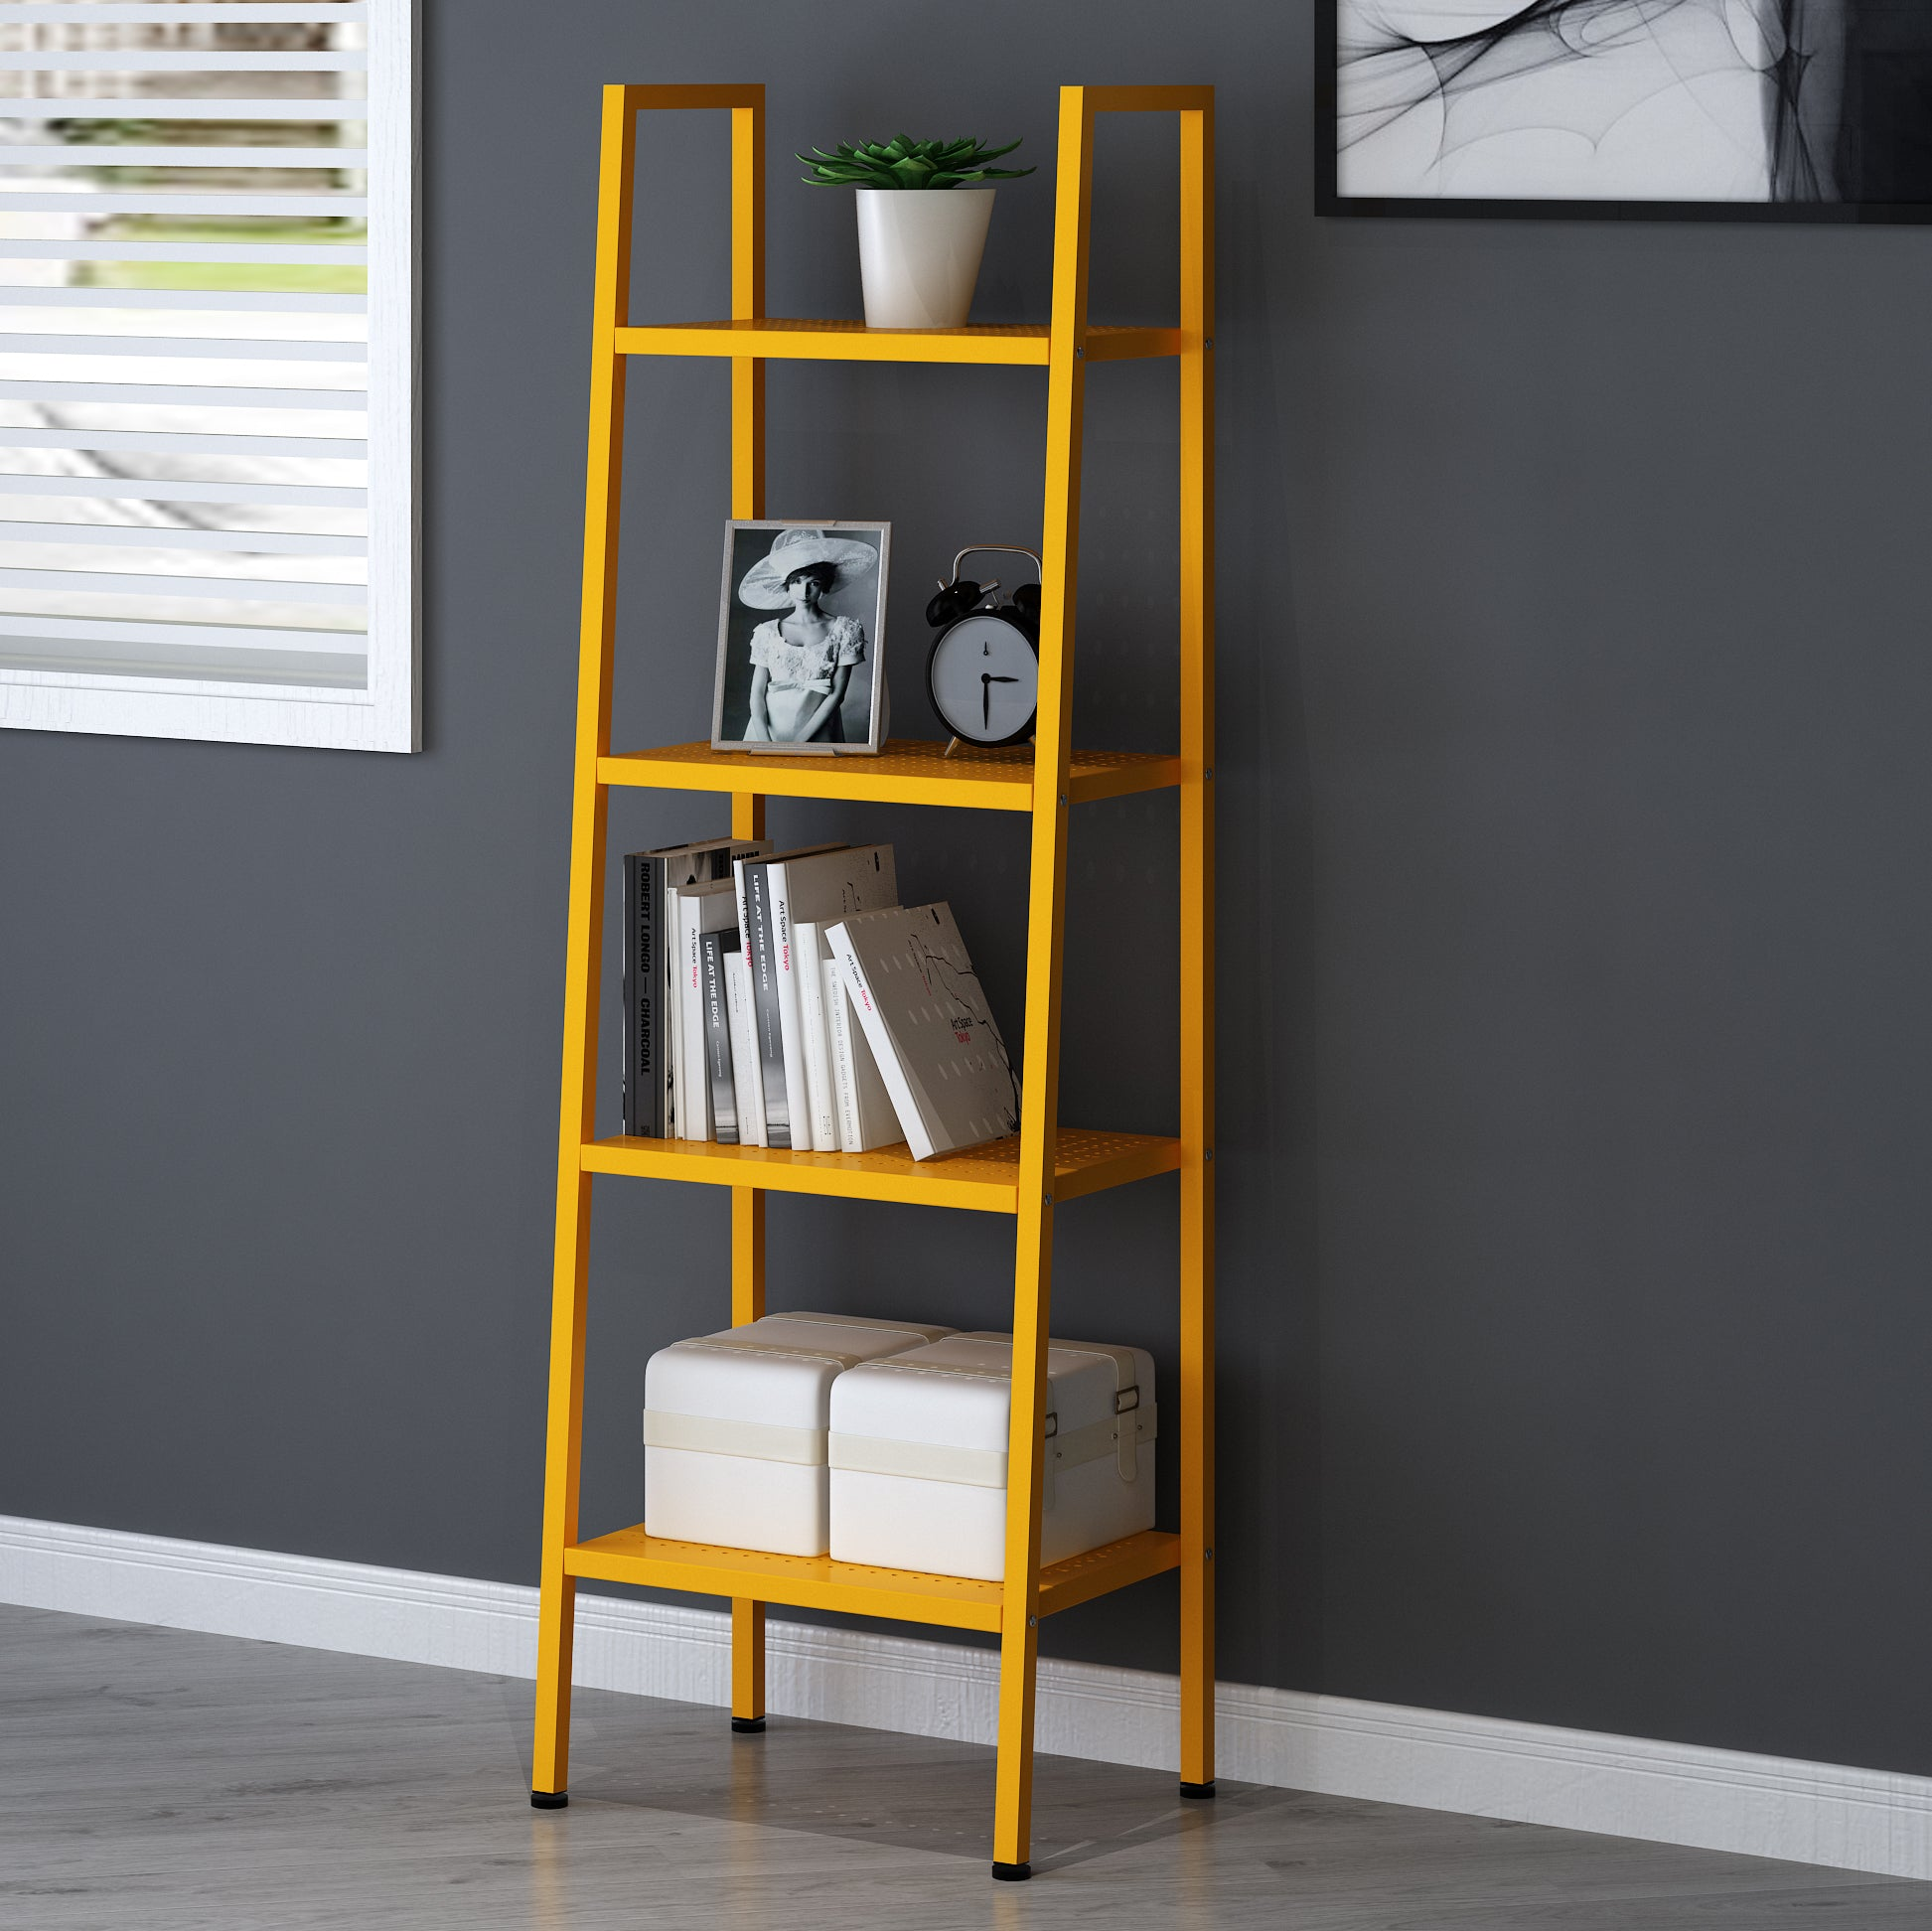 HUBA 4-Tier Shelving Unit Display Stand, Yellow